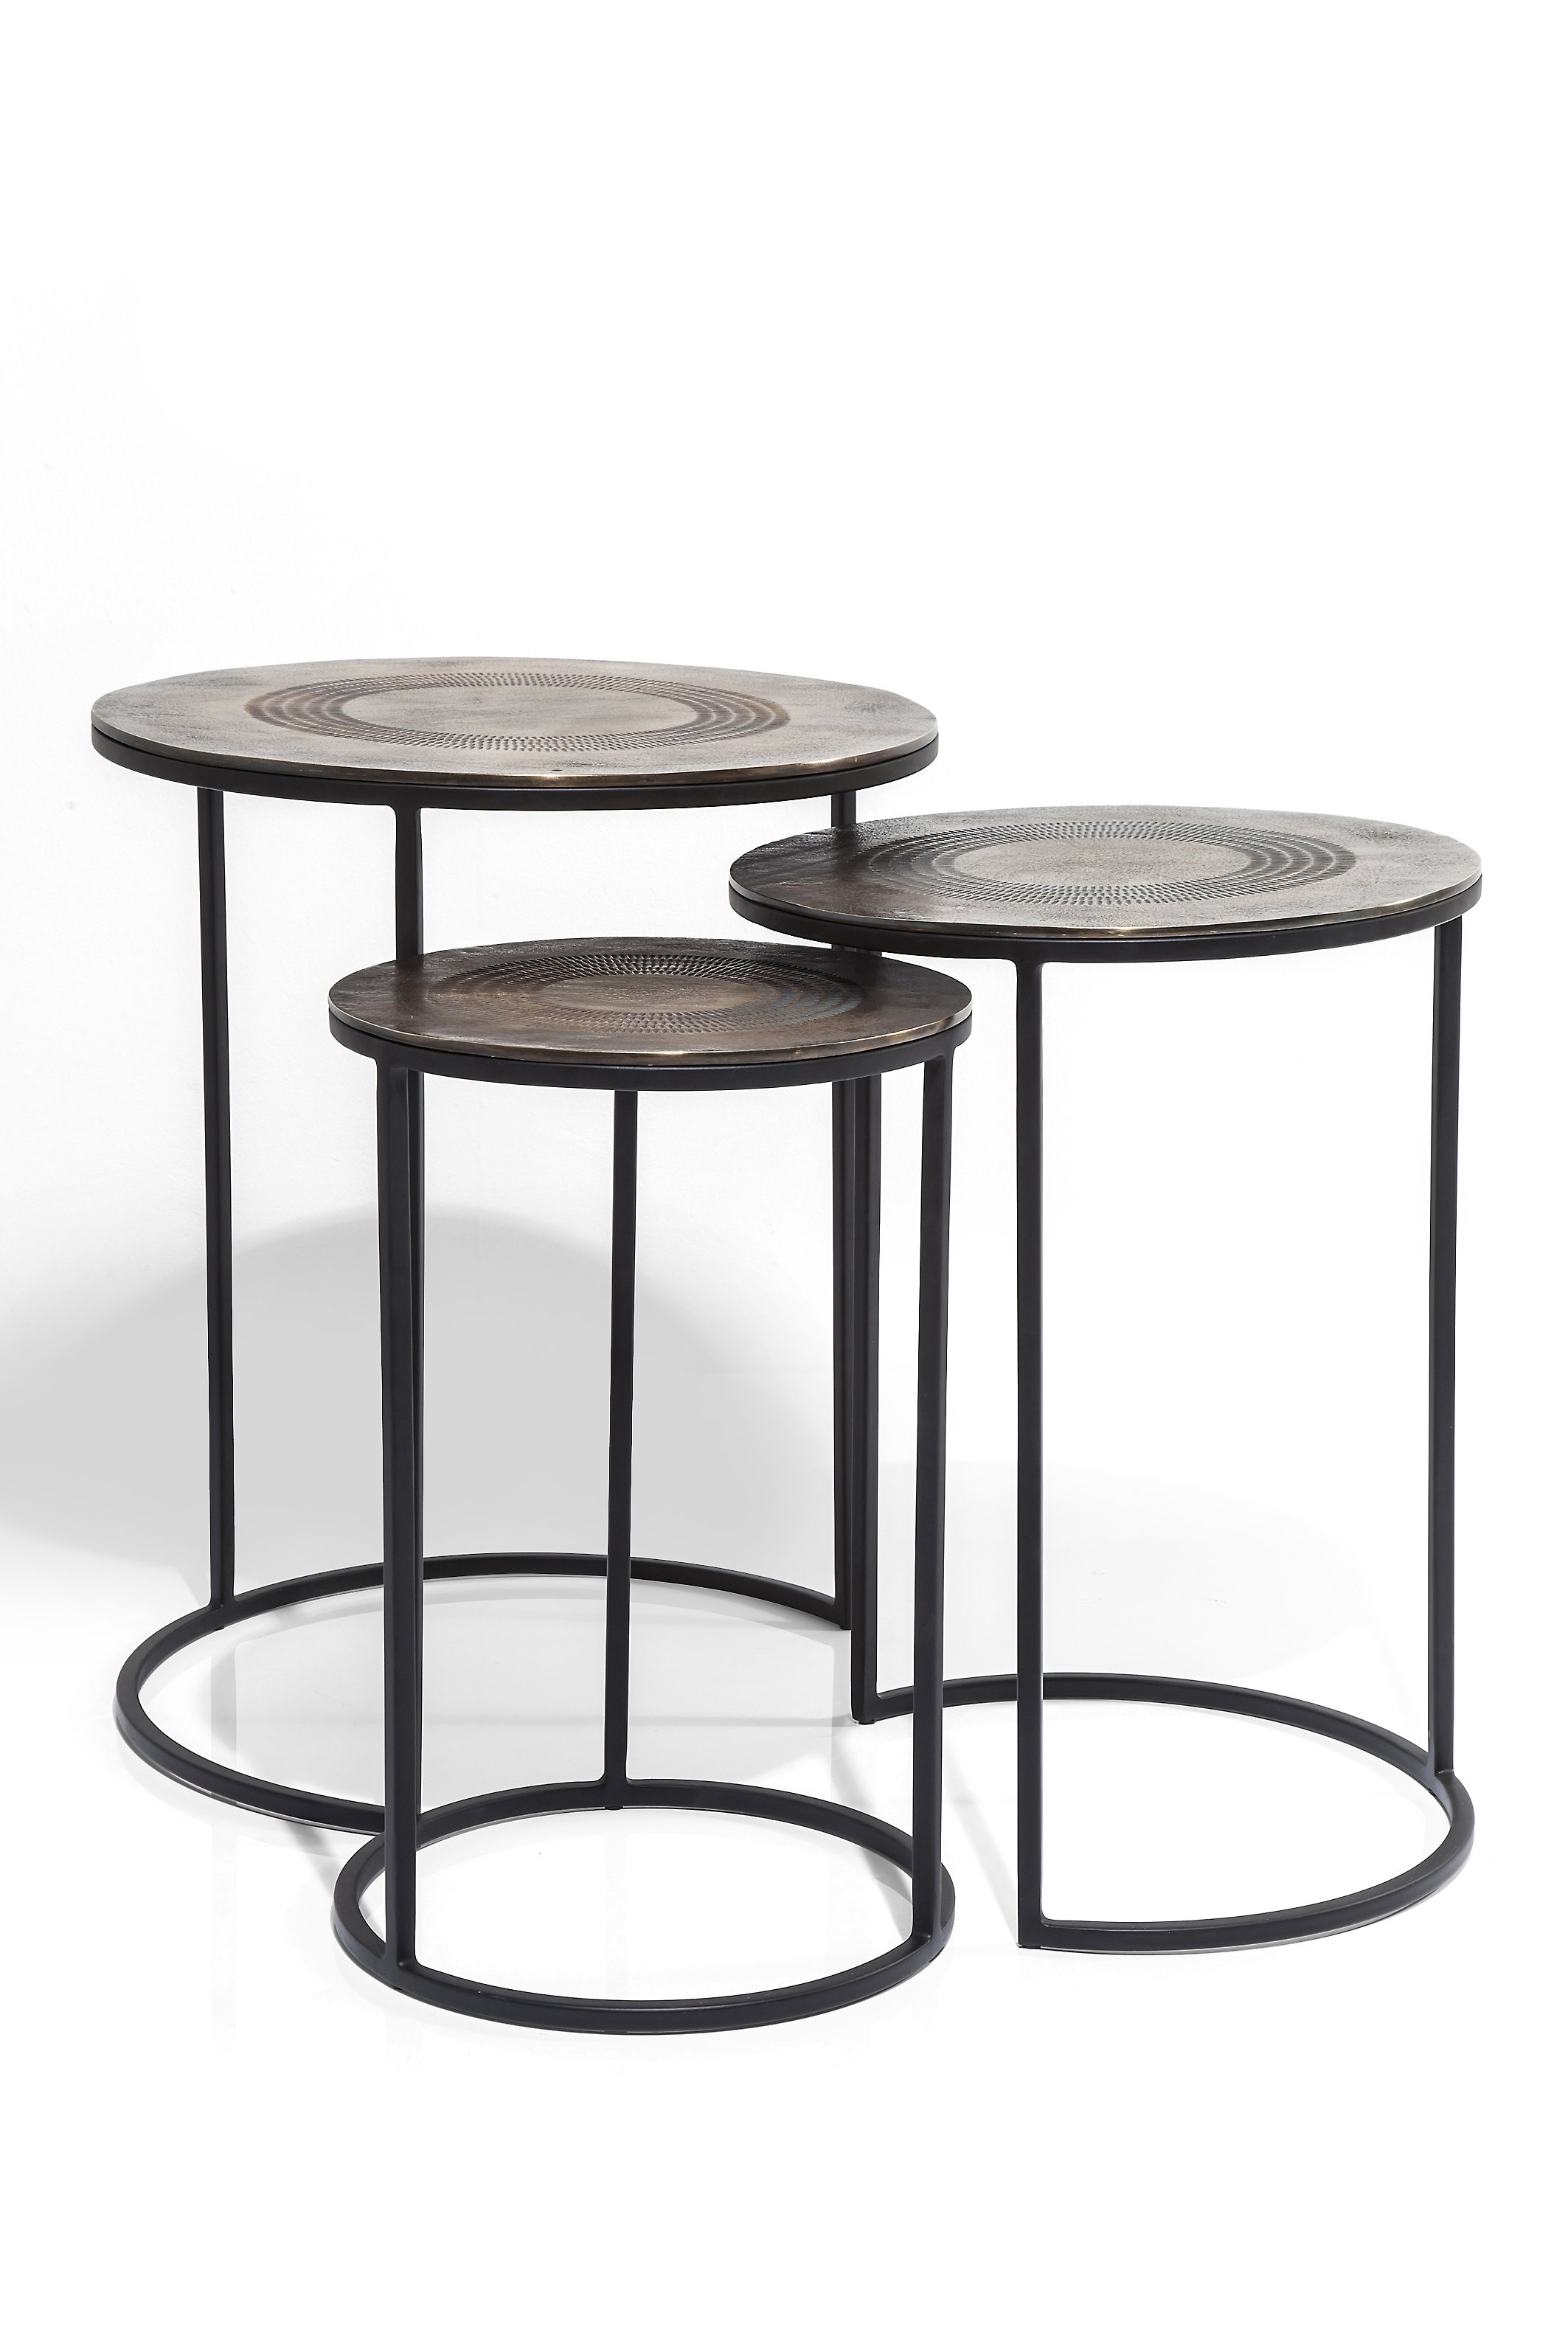 Kare Design Marrakesh 3 Piece Nest Of Tables | Wayfair.co.uk For Marrakesh Side Tables (Photo 26 of 30)